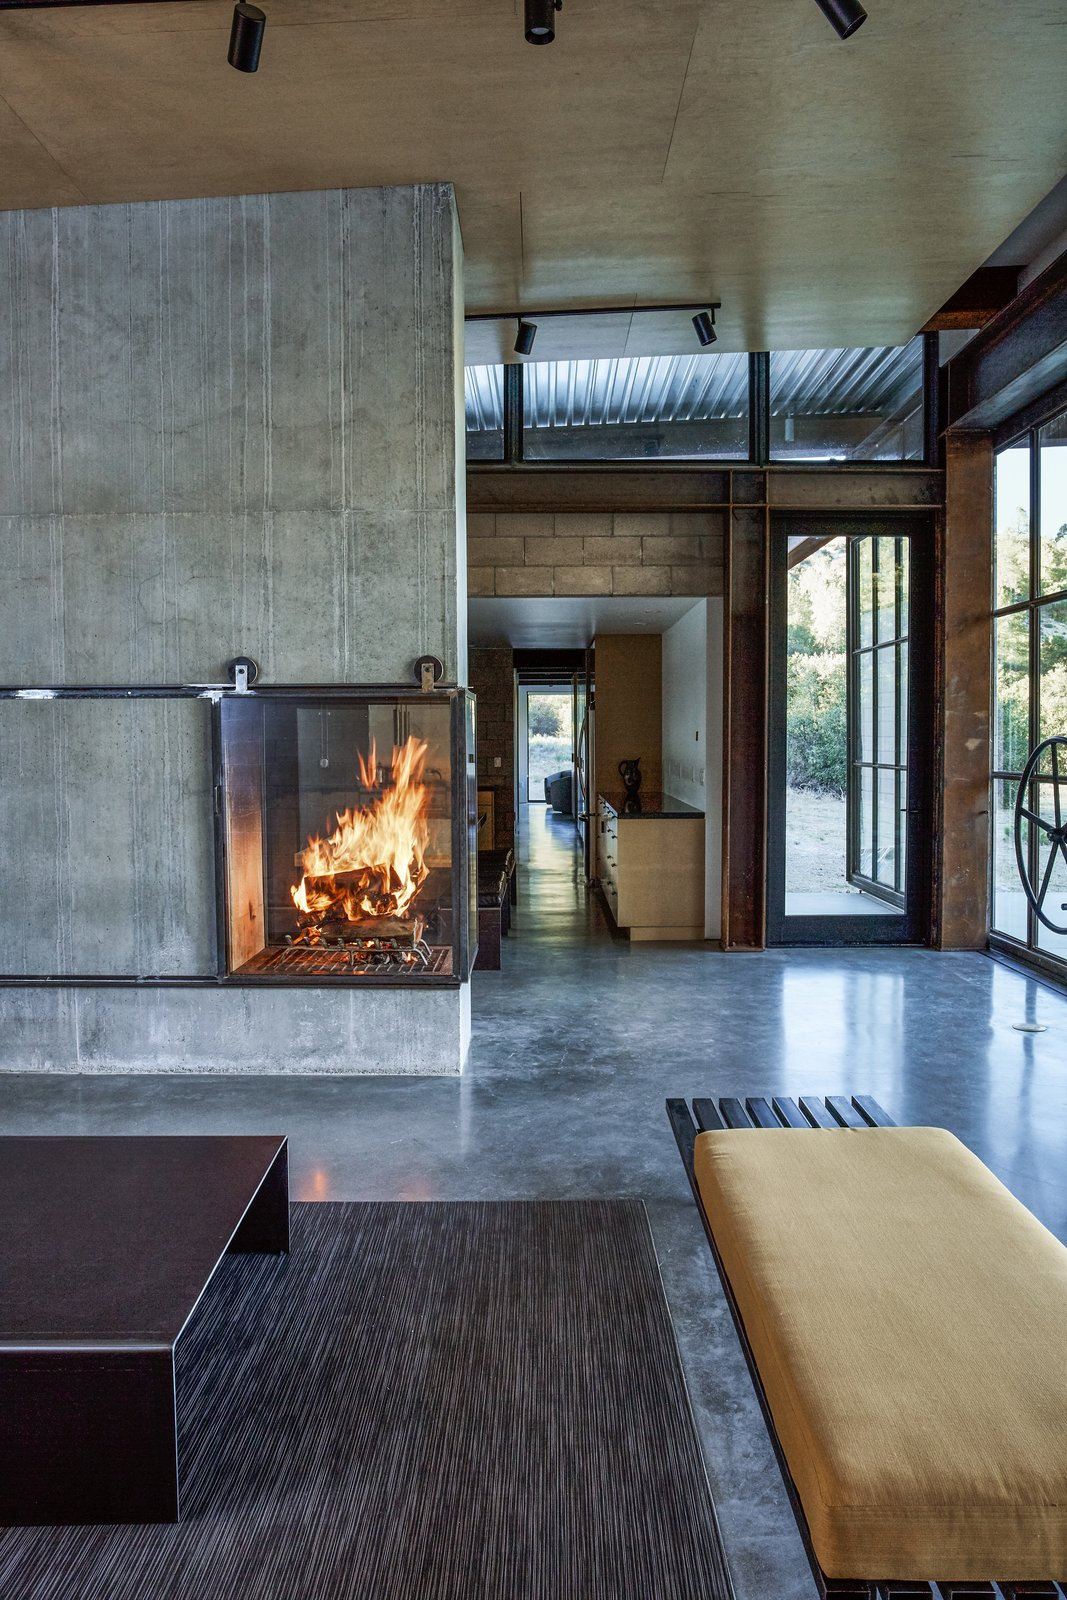 Living Room, Corner Fireplace, Wood Burning Fireplace, Concrete Floor, Bench, and Rug Floor Inspired by Russian and Finnish designs, the fireplace harvests hot air by sending it into the basement and radiating it into the room. - Tehachapi Mountains, California Dwell Magazine : November / December 2017  Photos from At This High-Desert Home, a Whole Wall Opens Up When You Crank a Giant Wheel